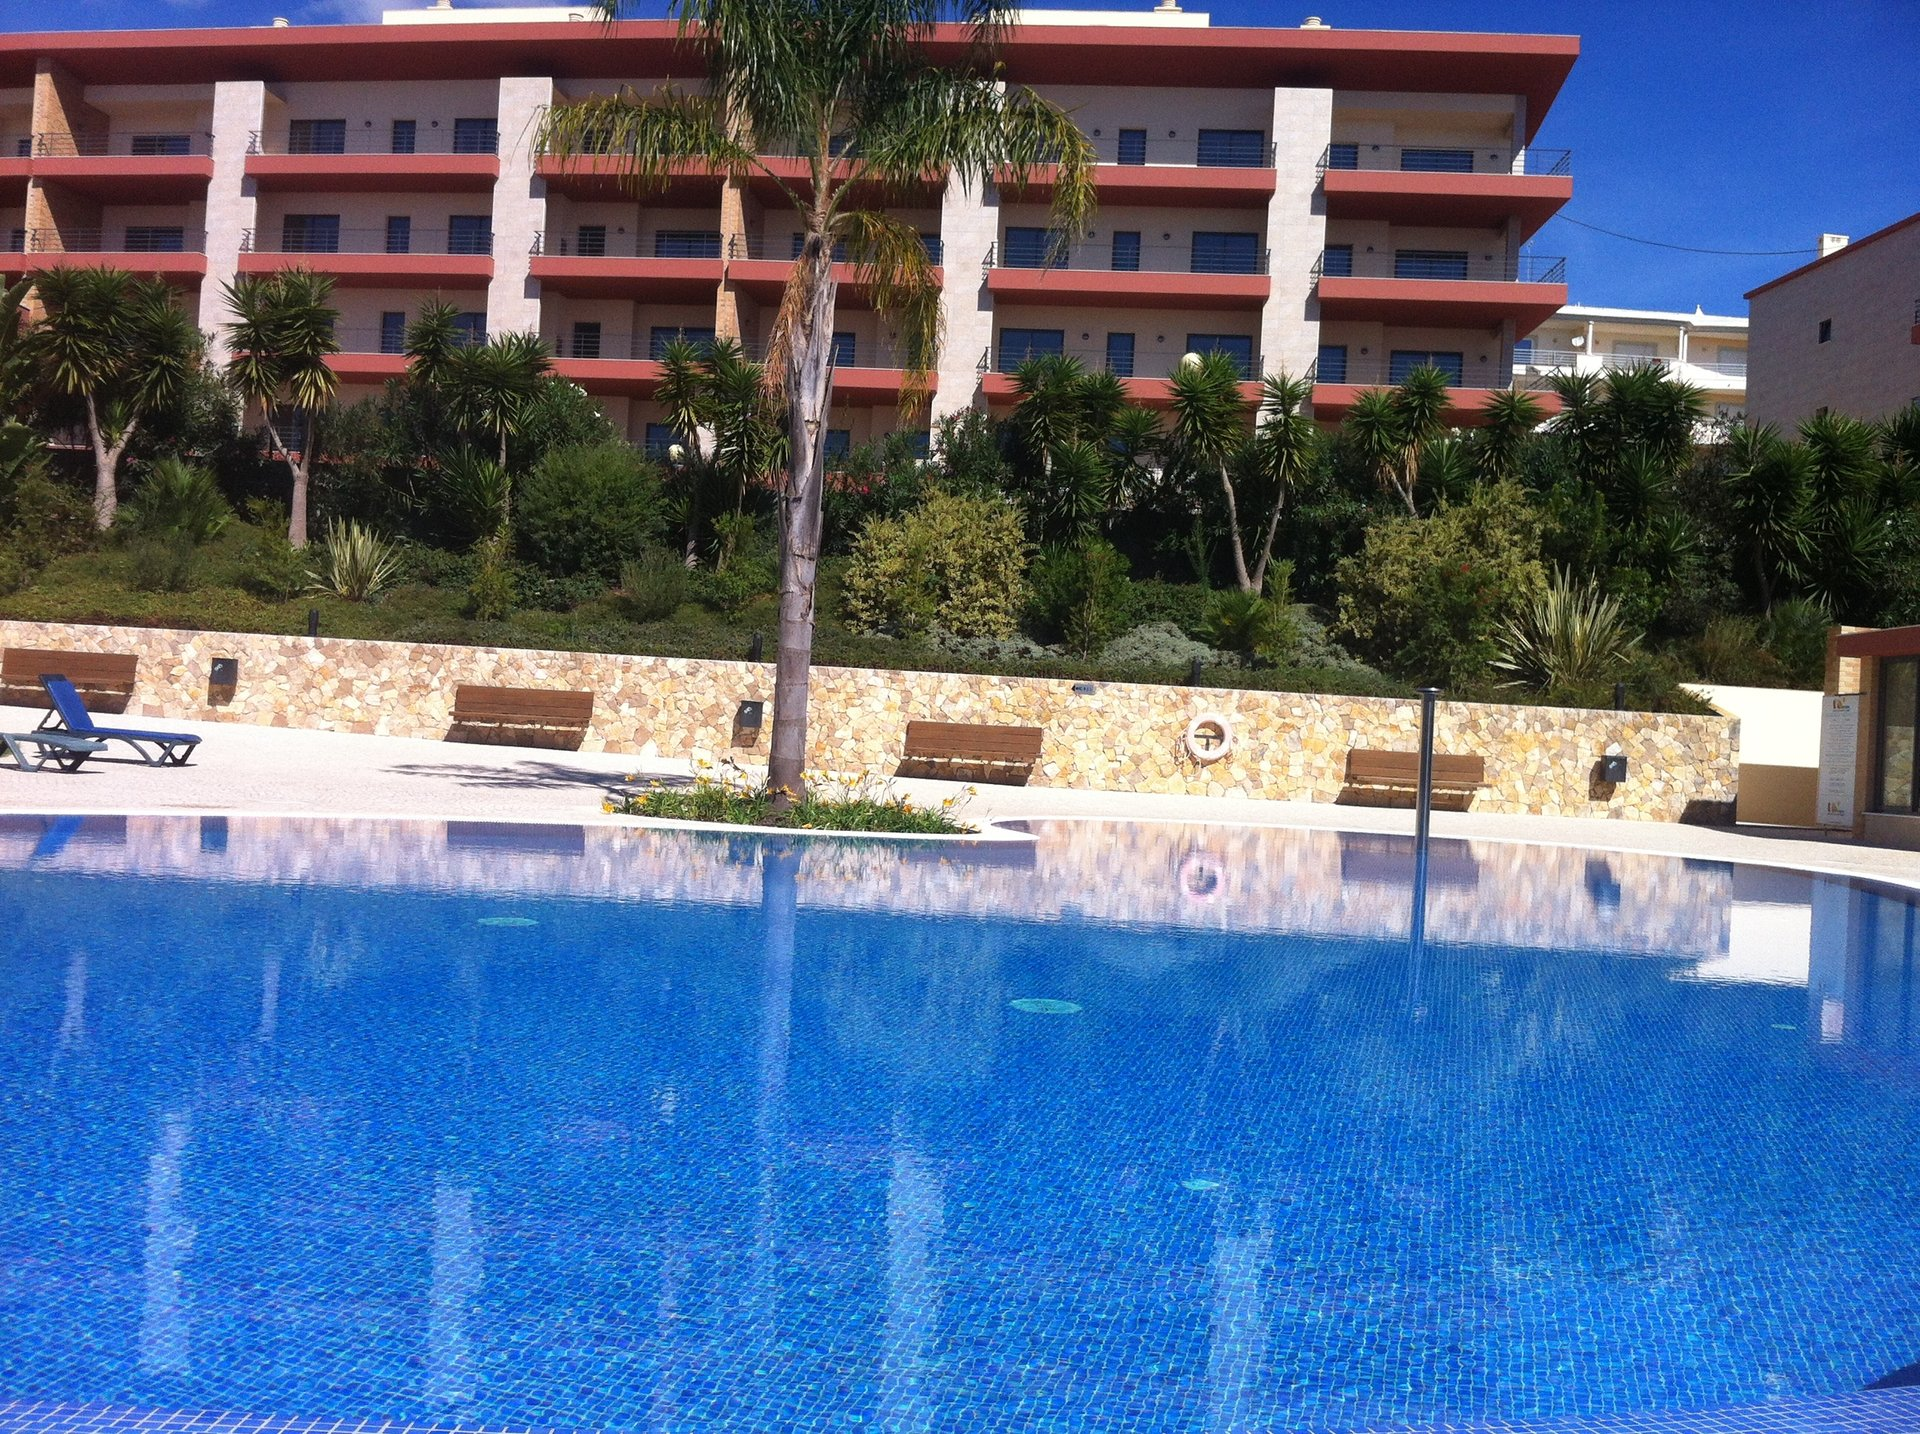 2 Bedroom Apartment Lagos, Western Algarve Ref: GA021